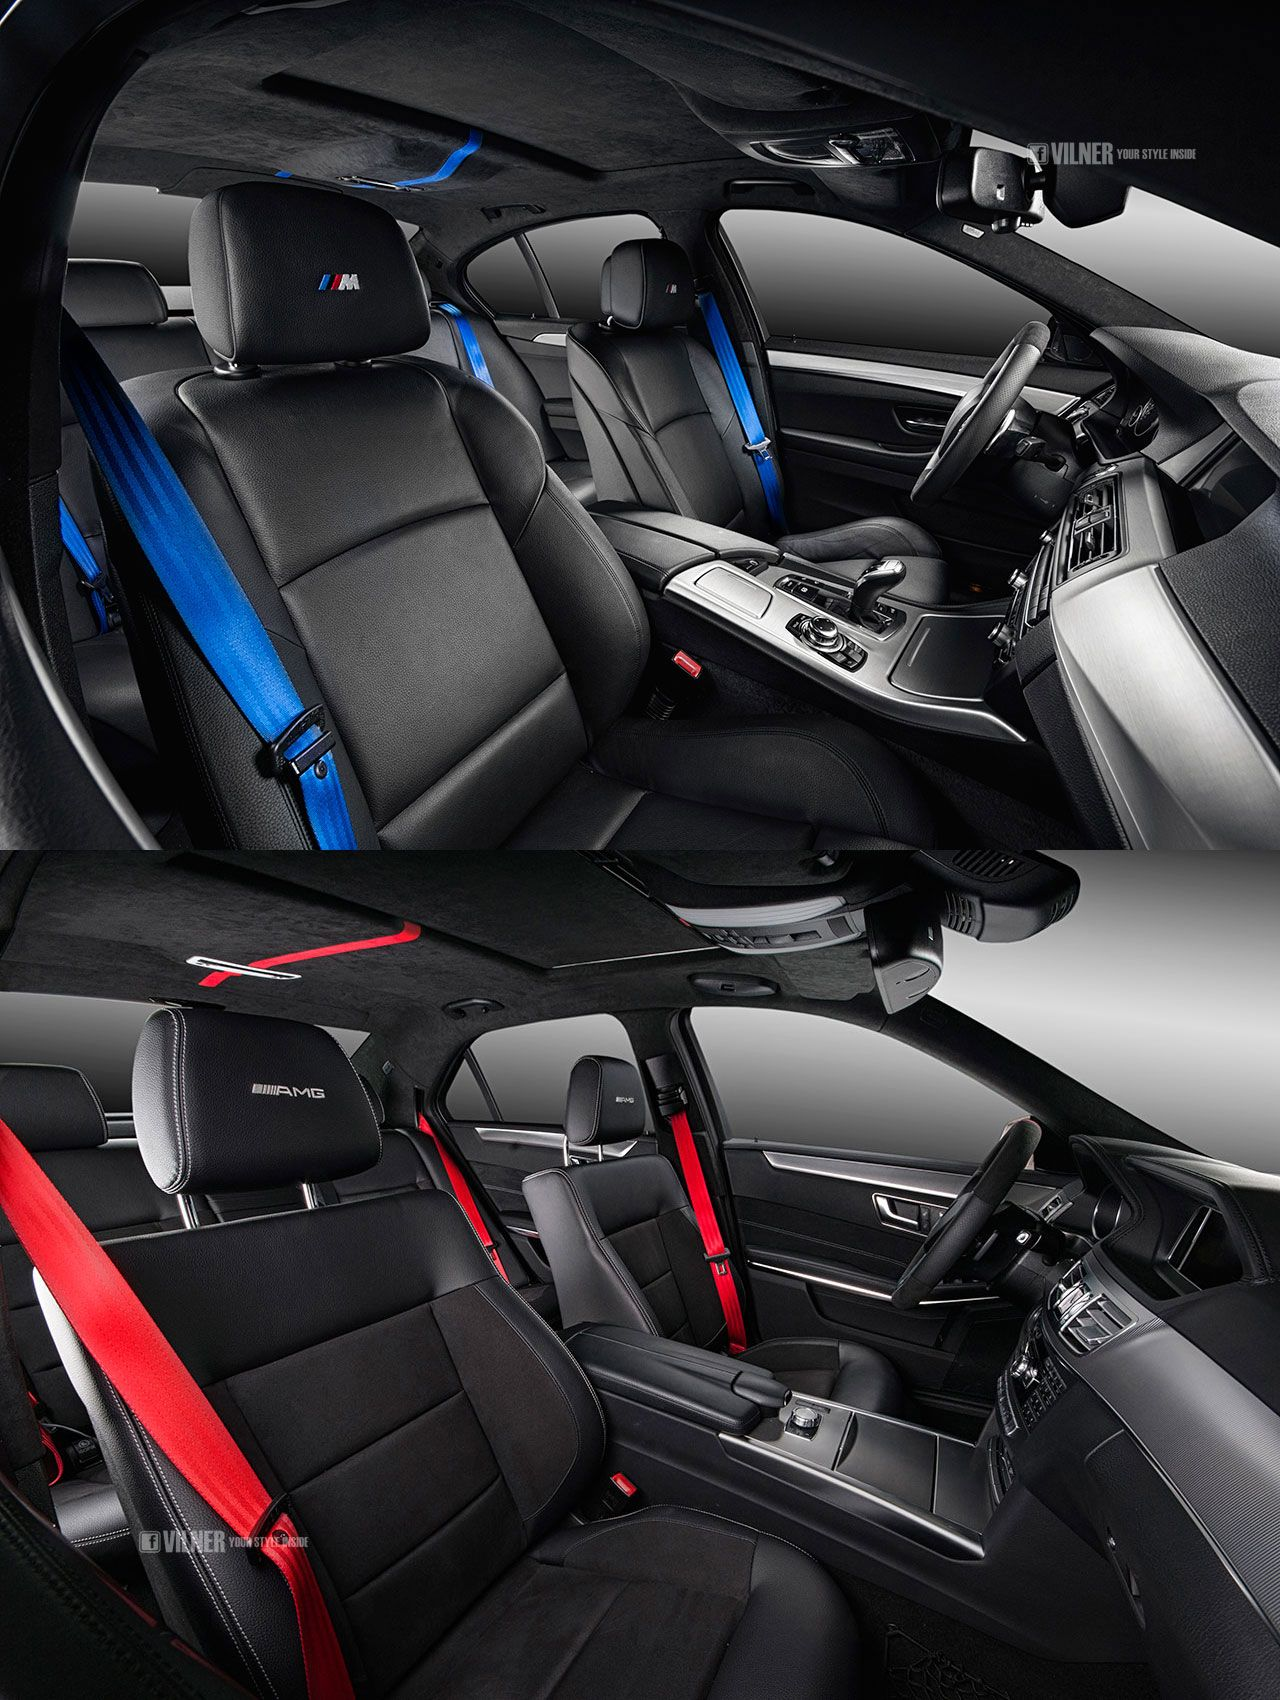 M Performance Amg Logo Embrodiery For The Seats